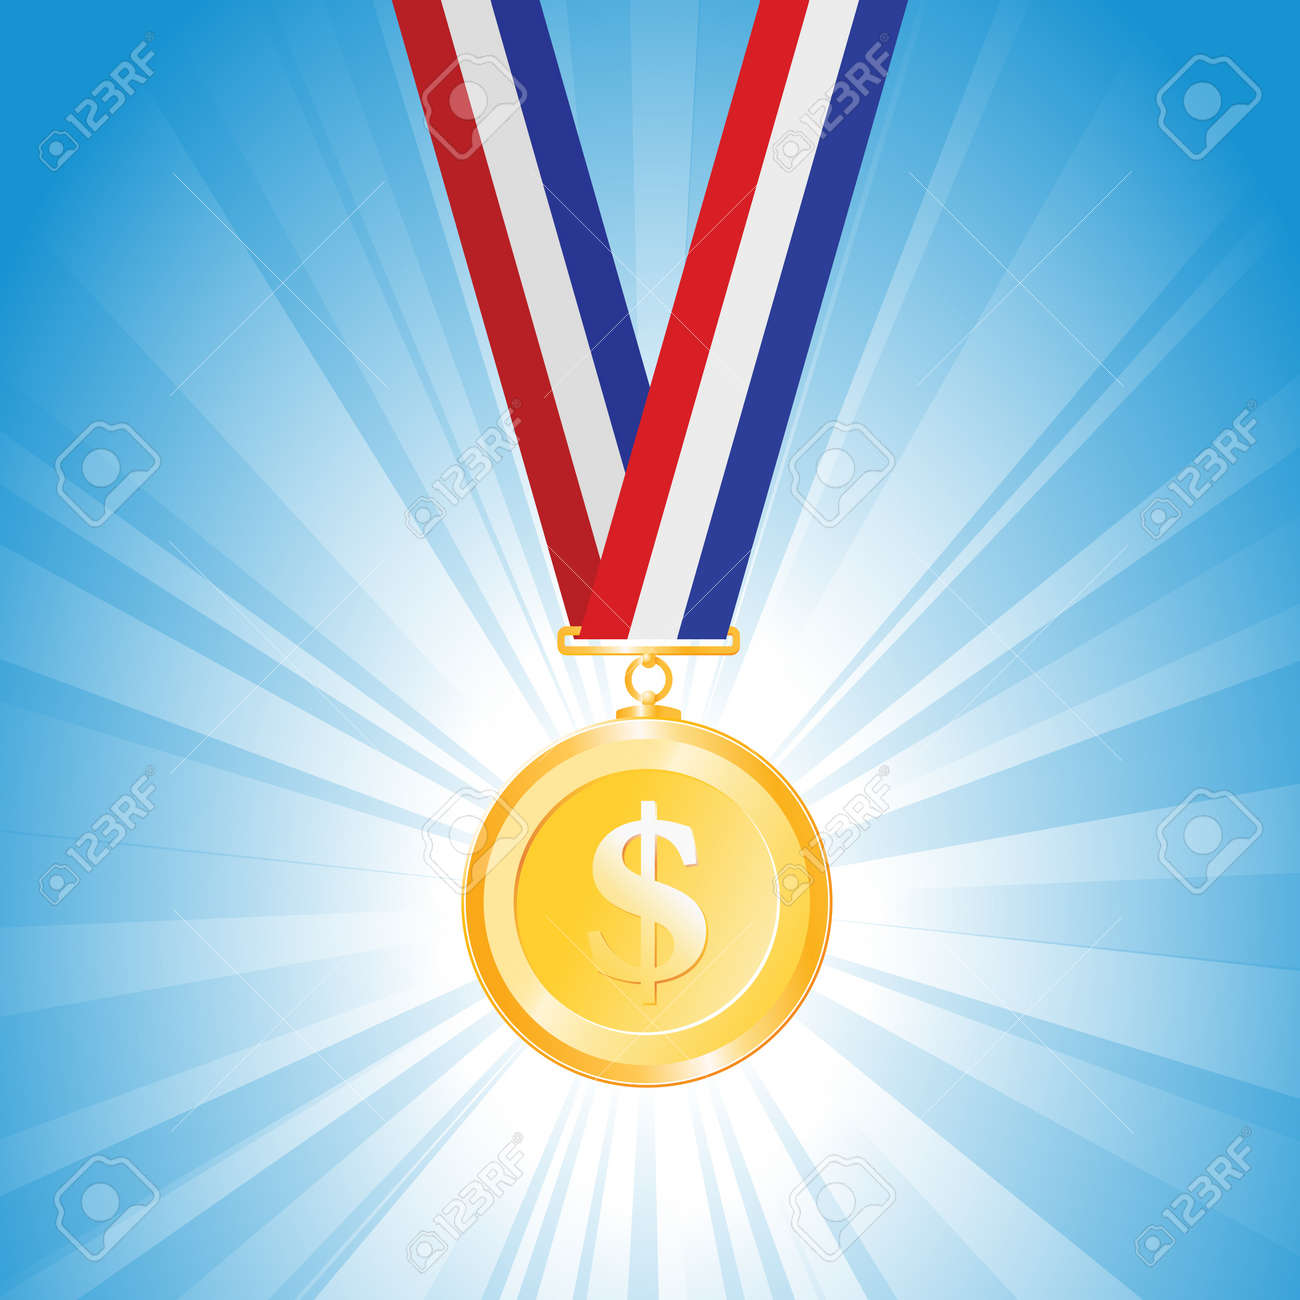 illustration of a medal with golden dollar coin Stock Vector - 16097297